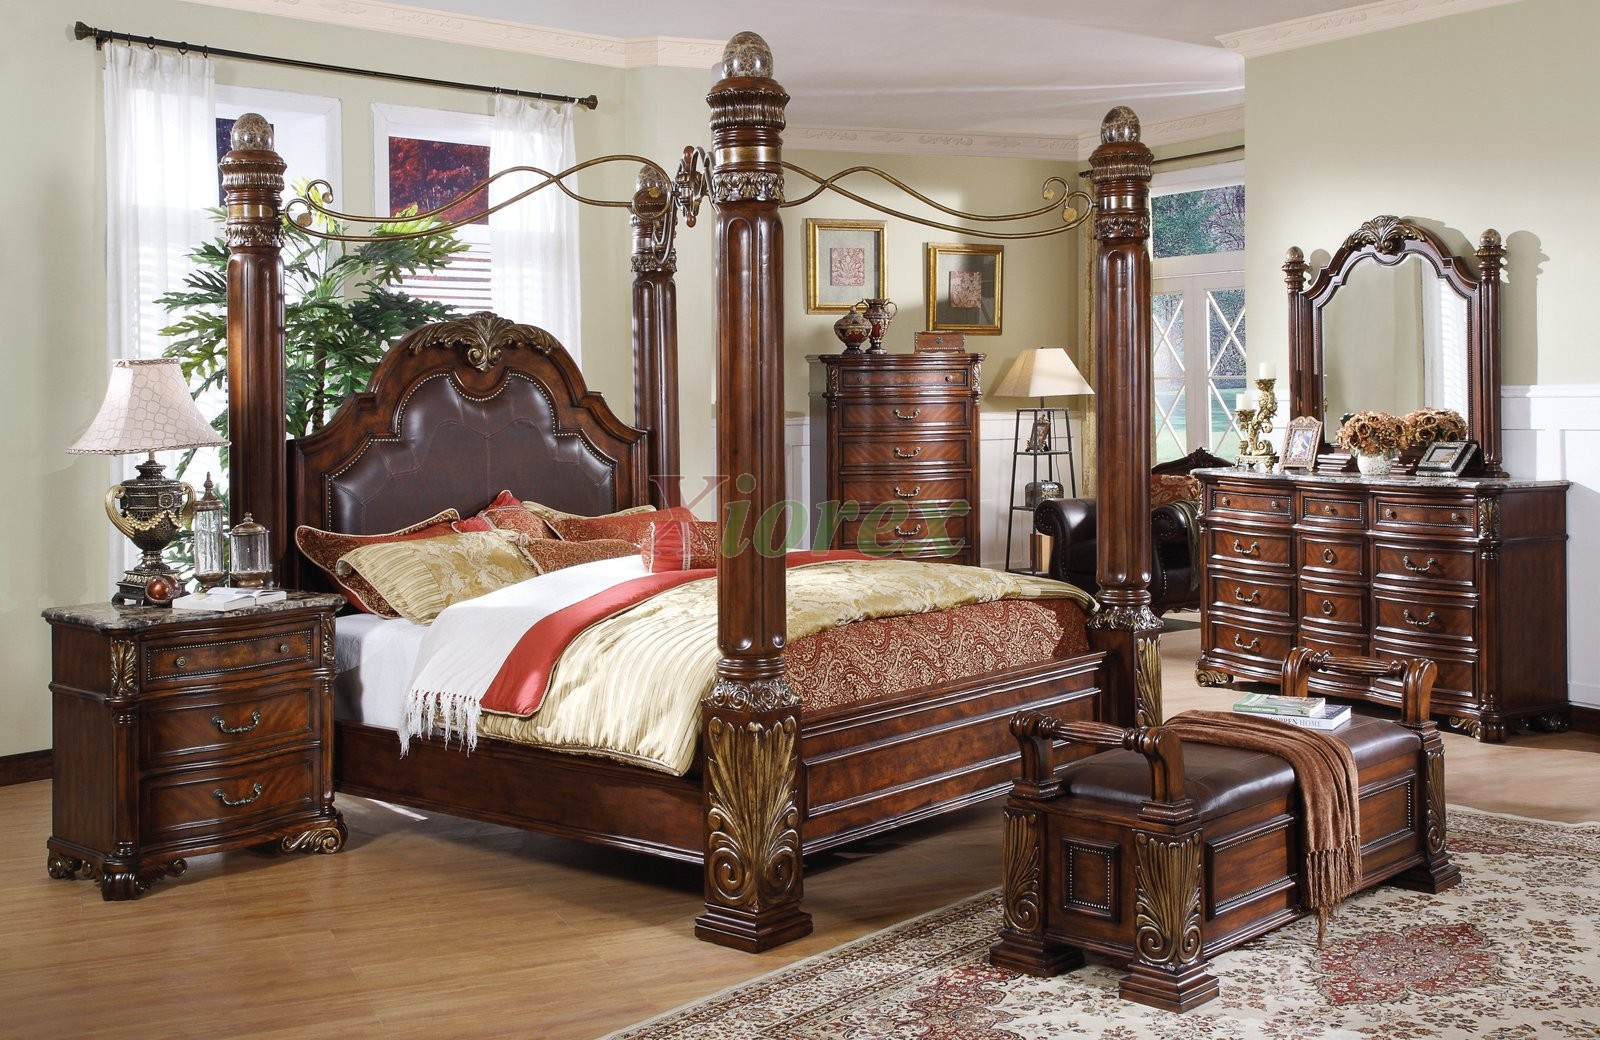 Unique King Size Bedroom Furniture Sets Decoration Ideas